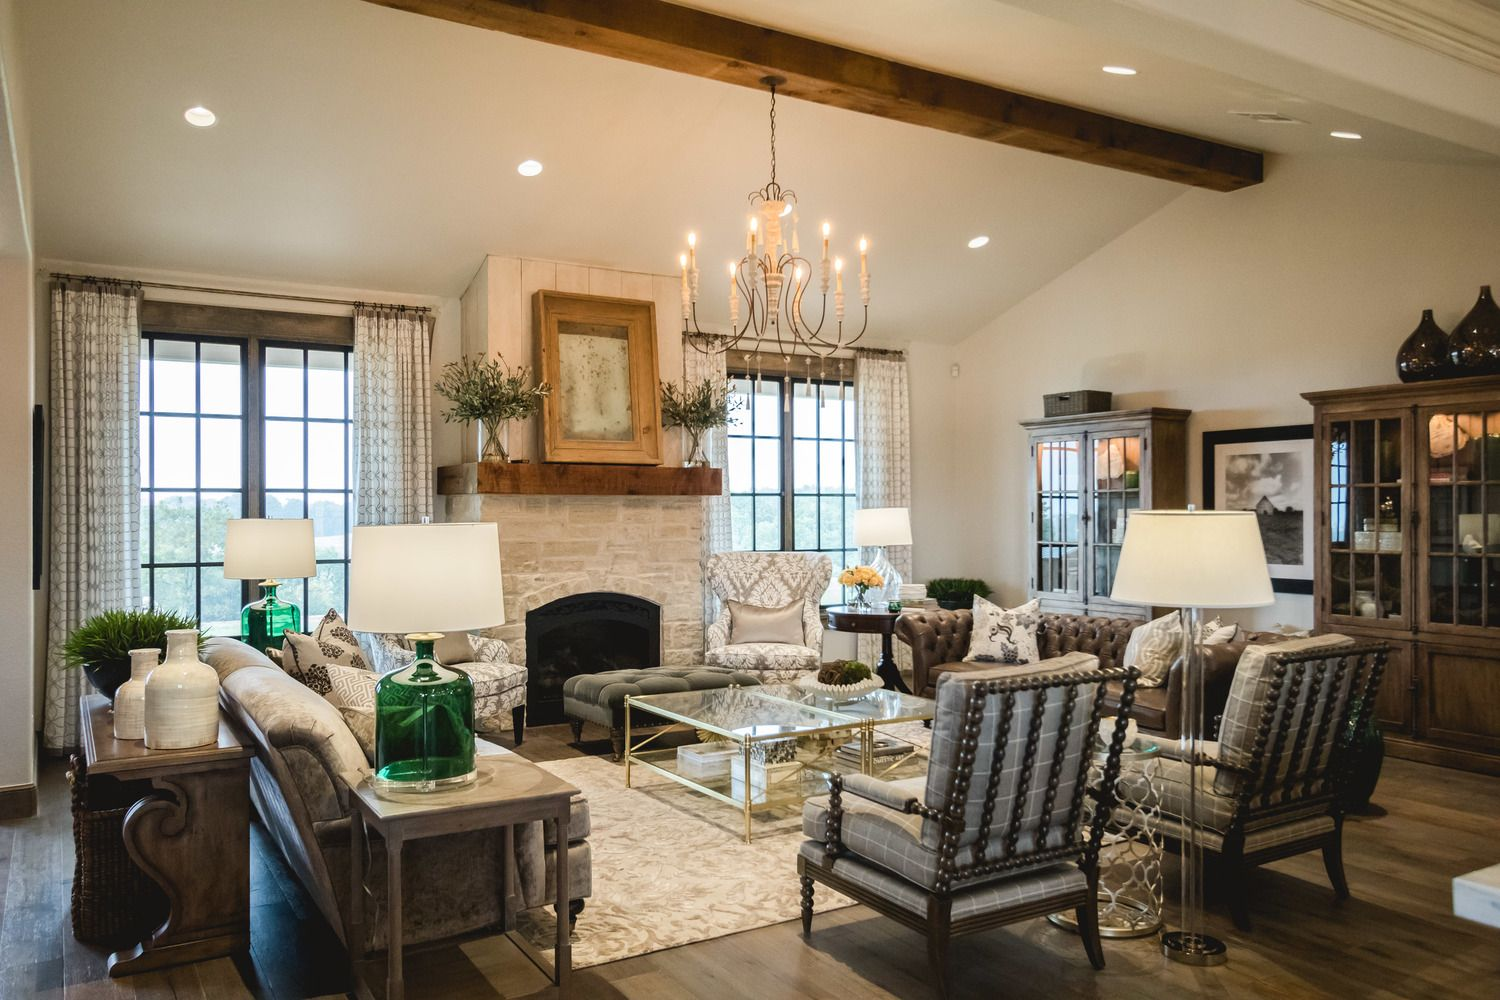 Pin By Kathy Engel On Intrare Interior Design French Country Living Room Interior